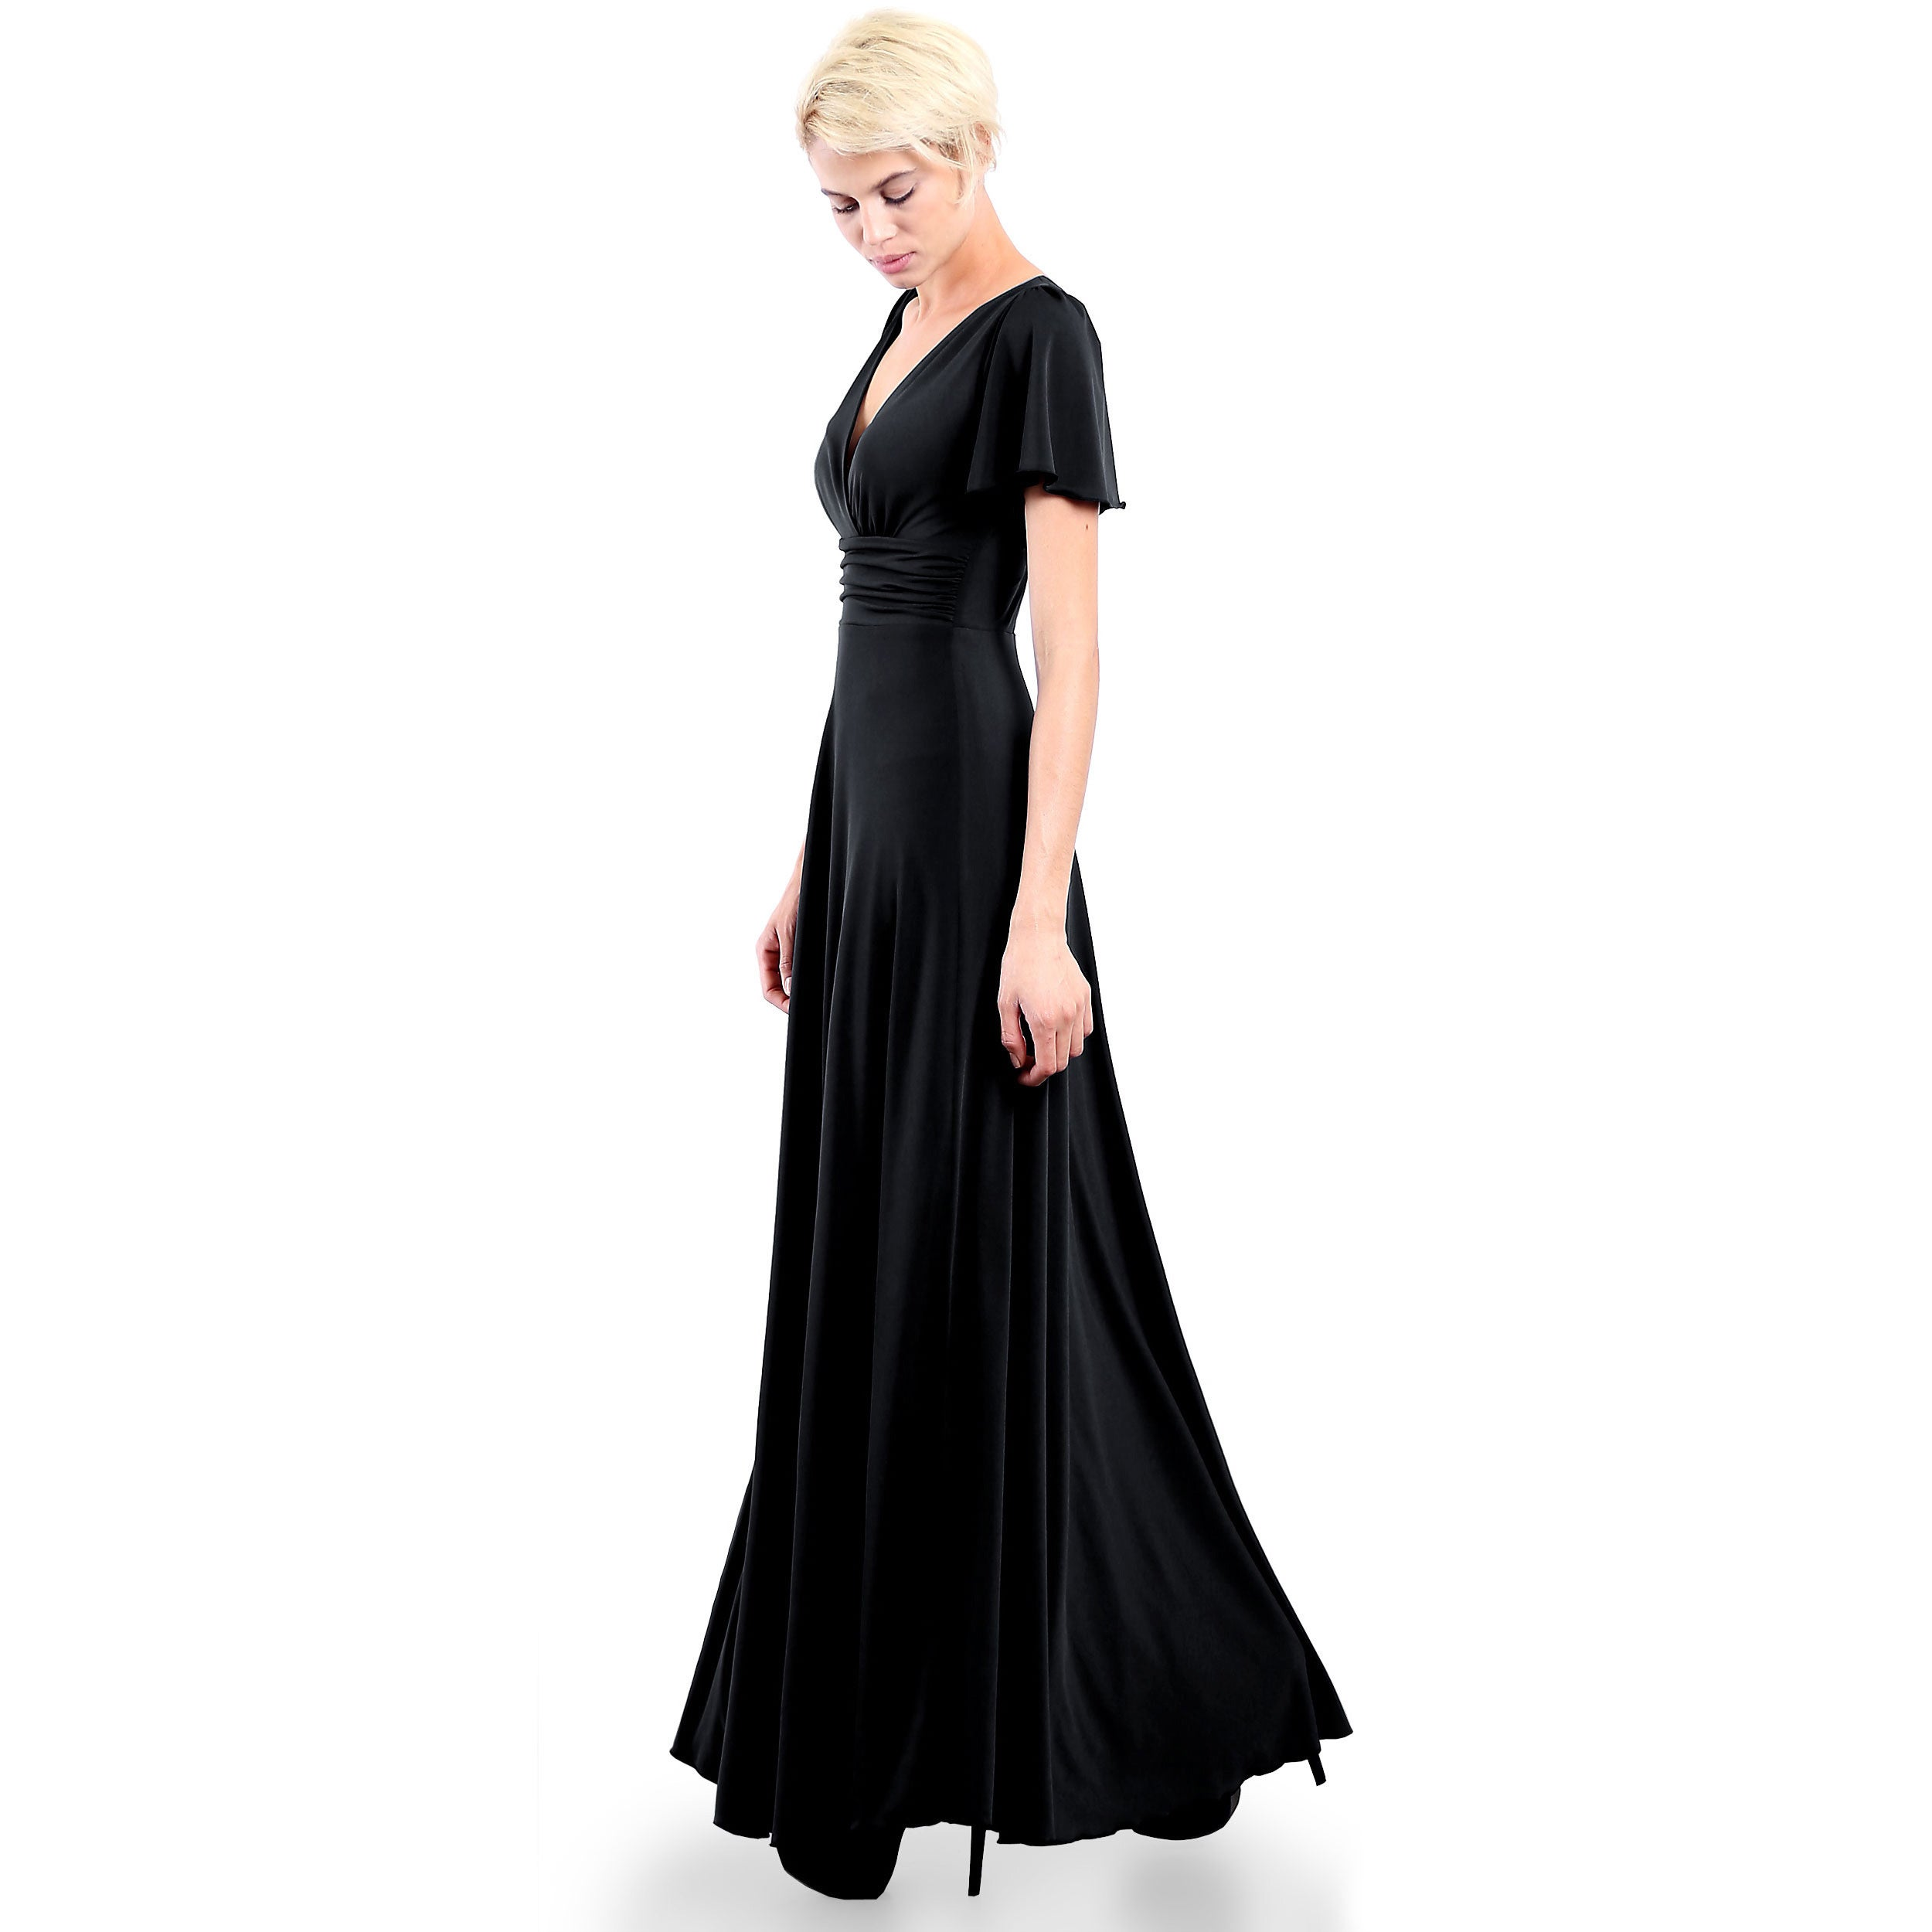 bba2389f04eb Shop Evanese Women's Elegant Slip-on Long Formal Evening Party Dress with  Empire Waist Full Skirt and Short Sleeves - Free Shipping Today - Overstock  - ...